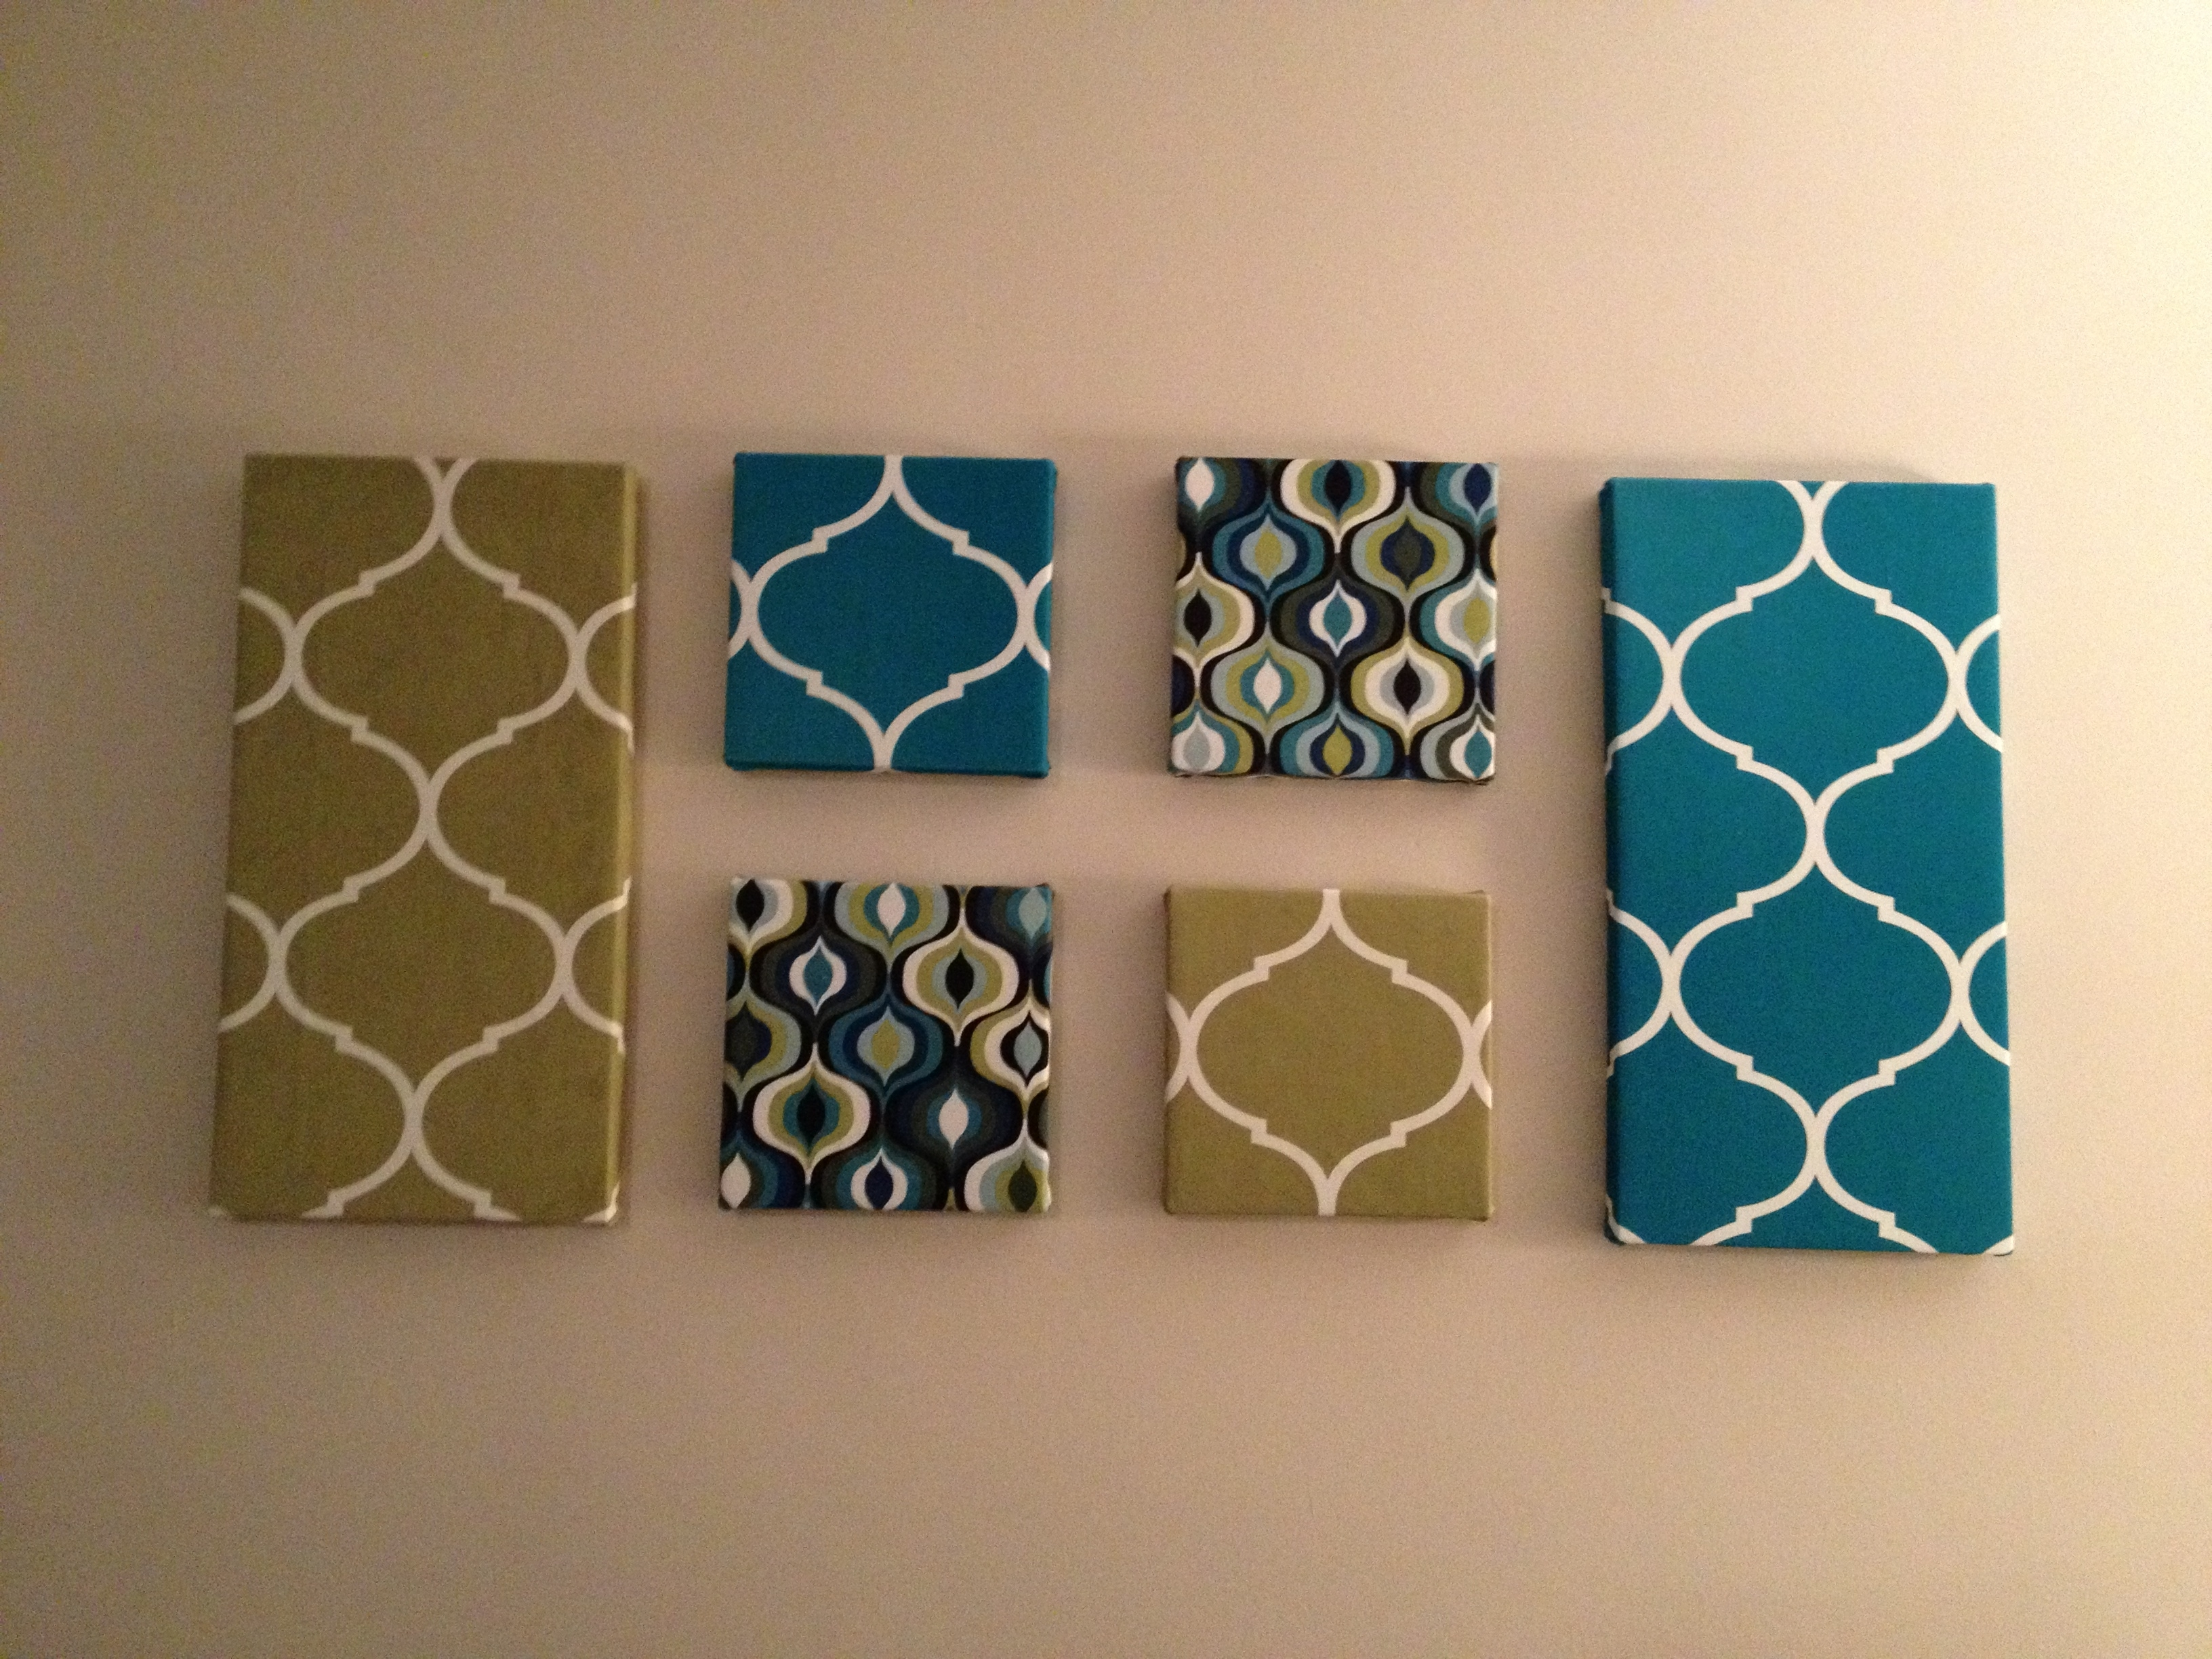 Wall Art: Fabric Covered Canvases | Candy And Her Cupcakes For 2017 Canvas And Fabric Wall Art (View 14 of 15)